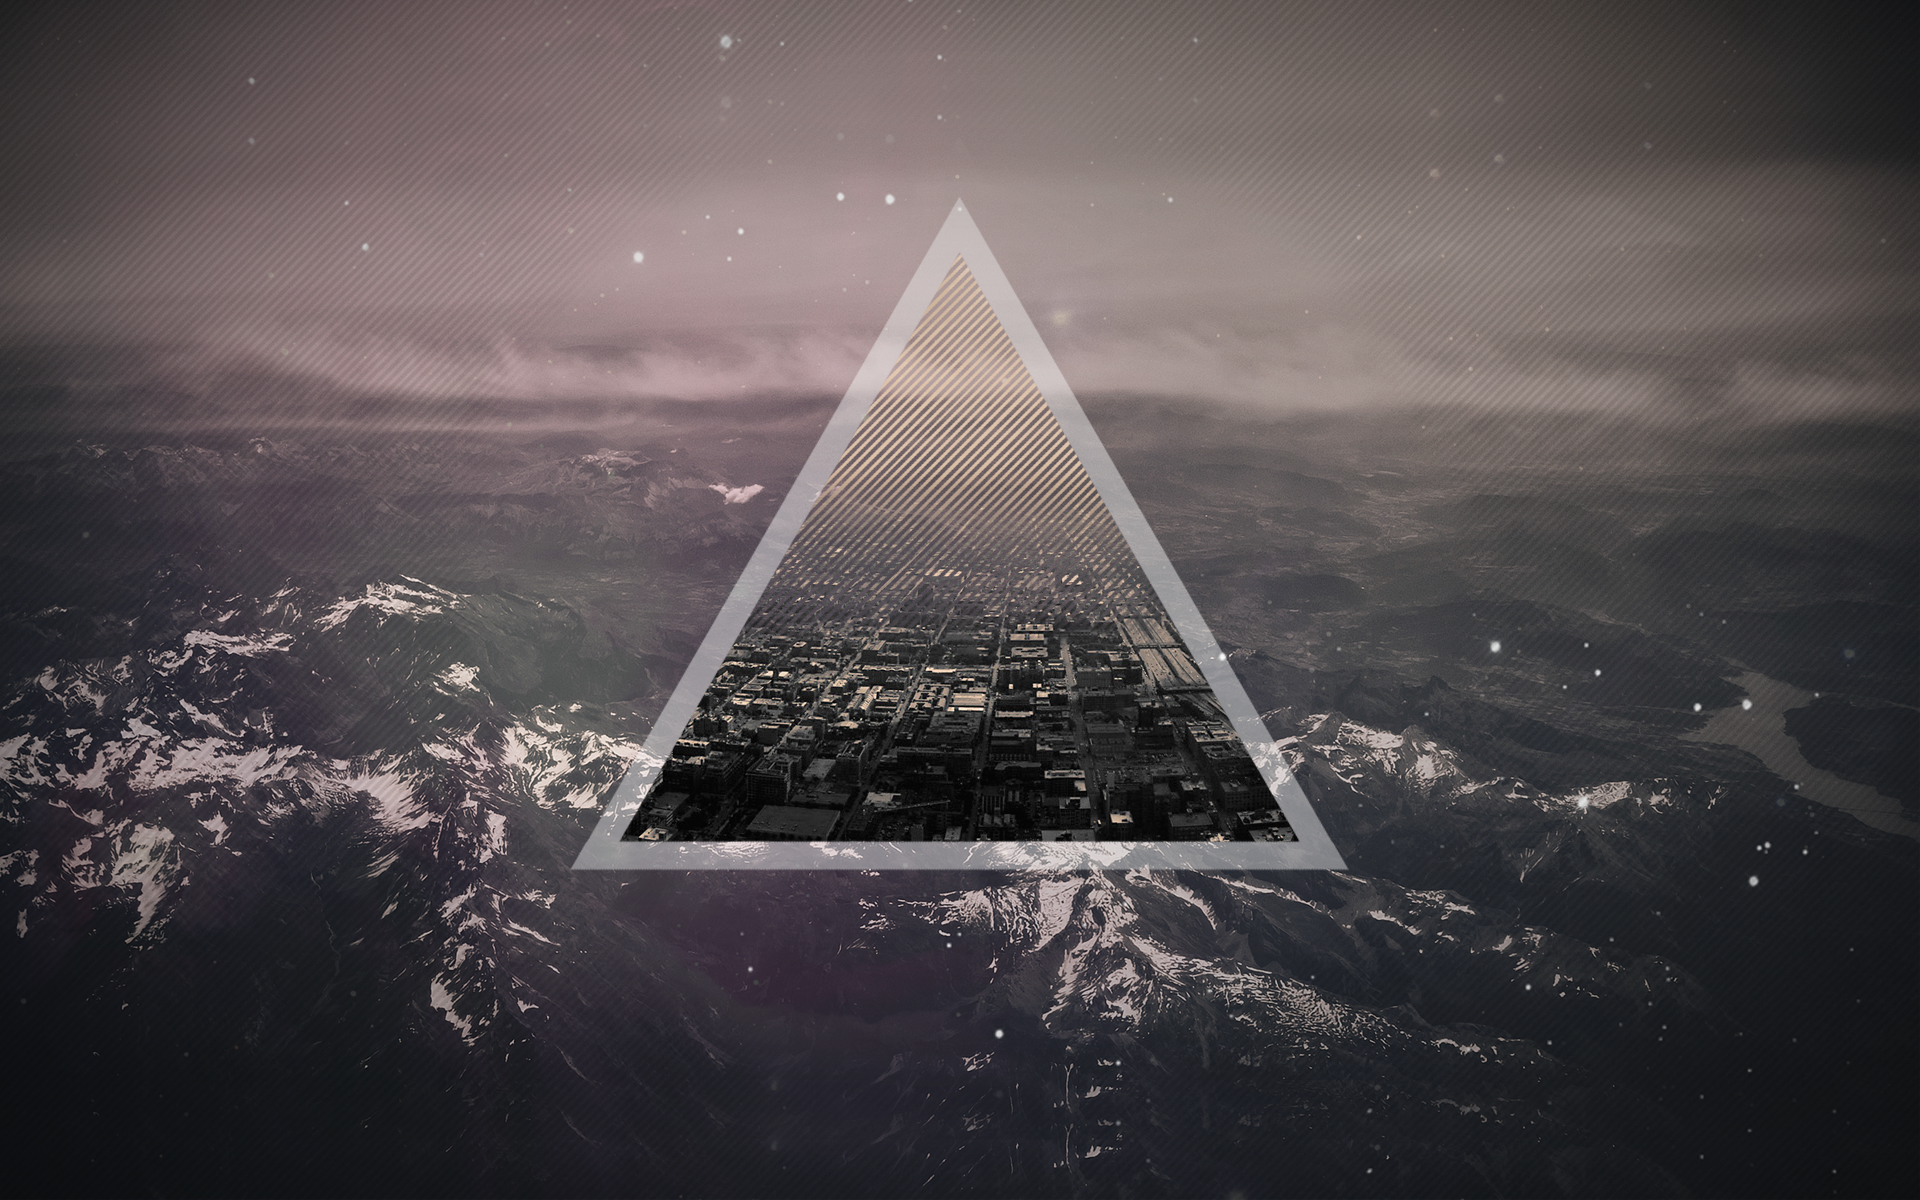 Hipster Triangle Backgrounds Tumblr Triangle wallpapers 1920x1200